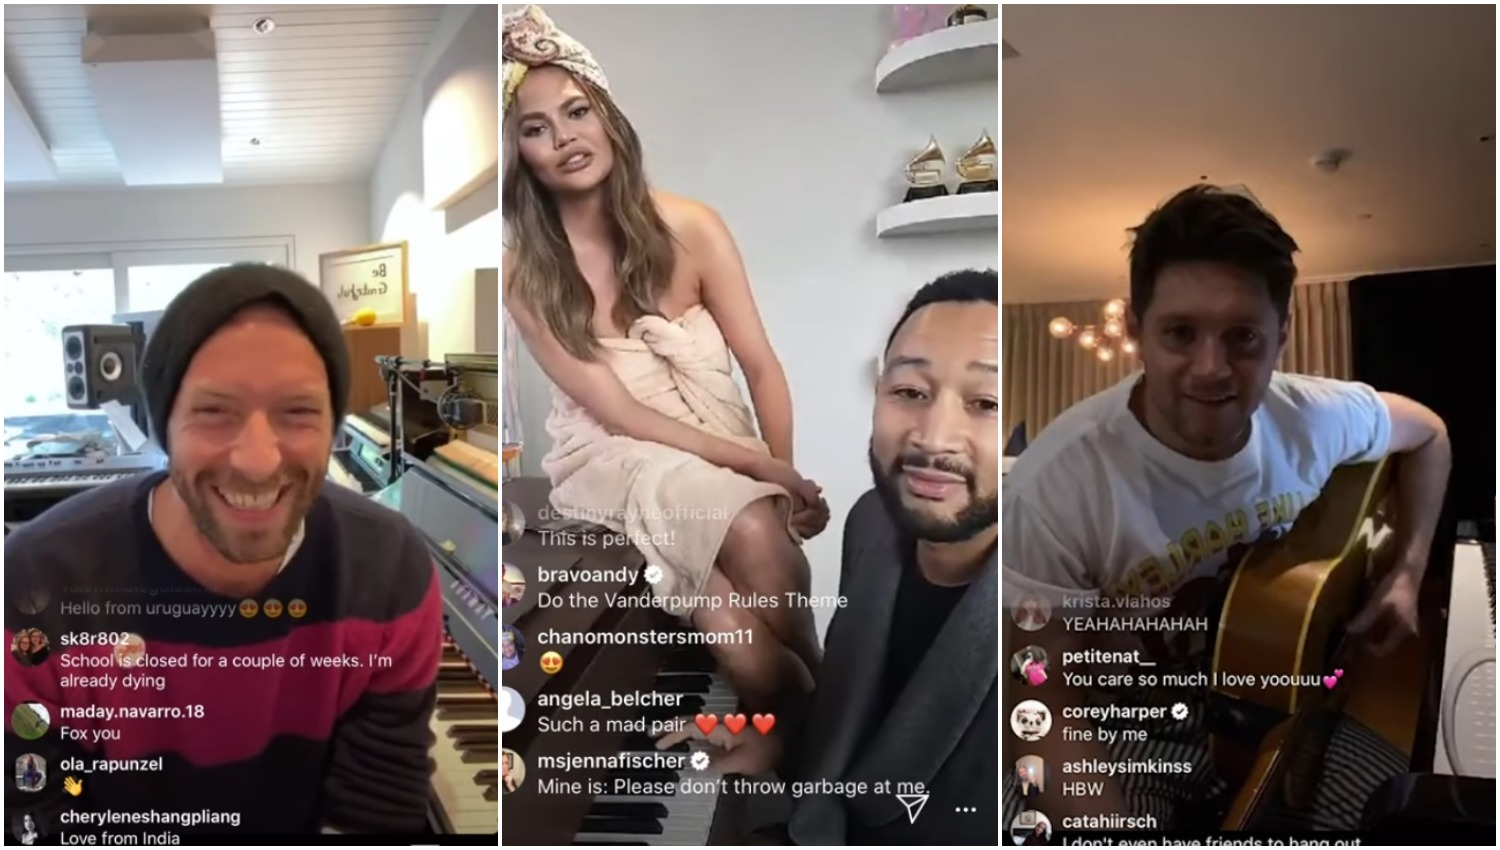 Artists like Chris Martin, John Legend, and Niall Horan are connecting with fans by doing live-streamed concerts through Instagram Live during the COVID-19 shutdown